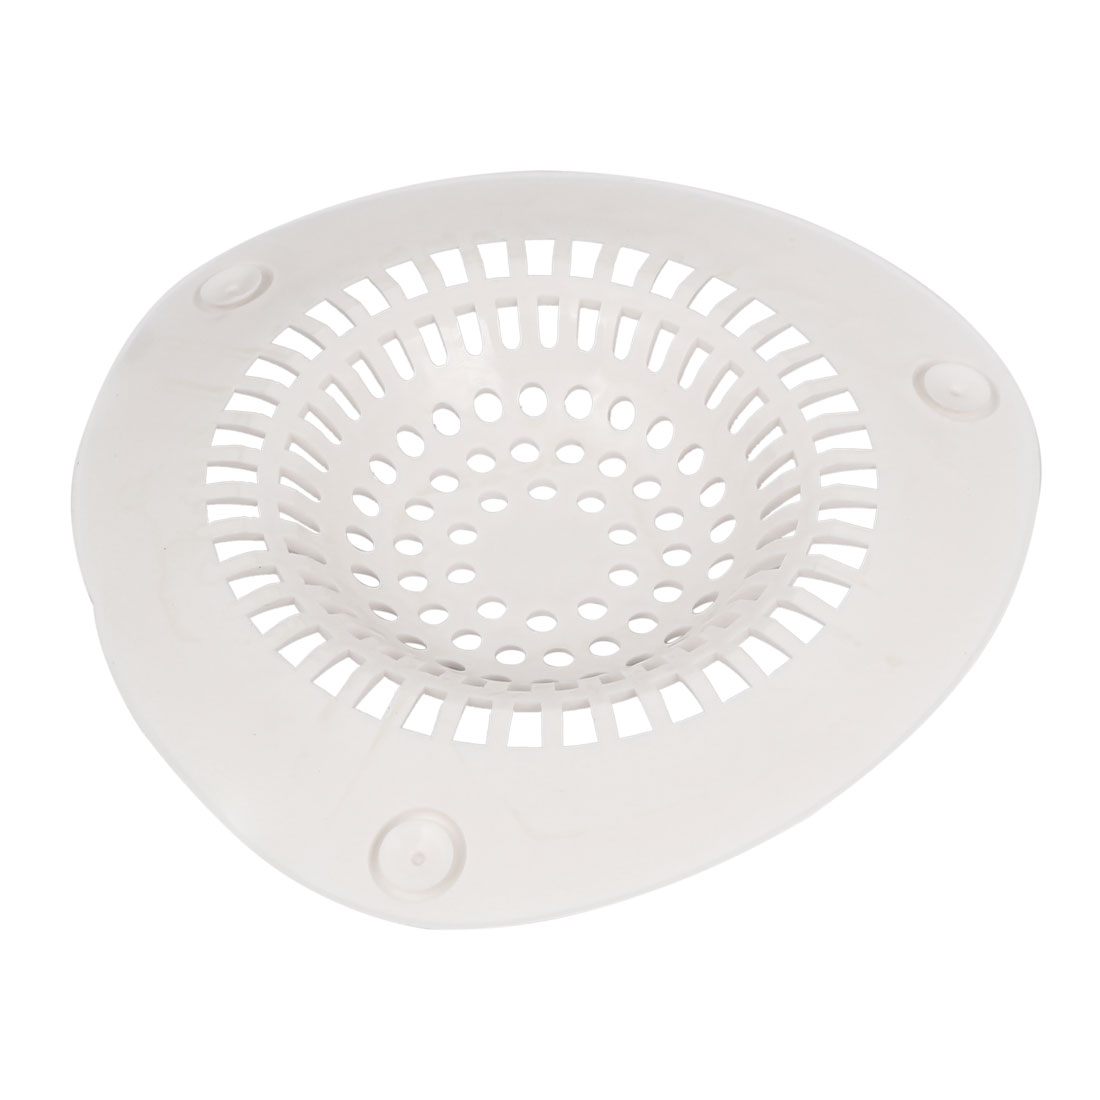 Kitchen Bath Waste Strainer Filter Net Drain Hair Stopper Catcher Off White